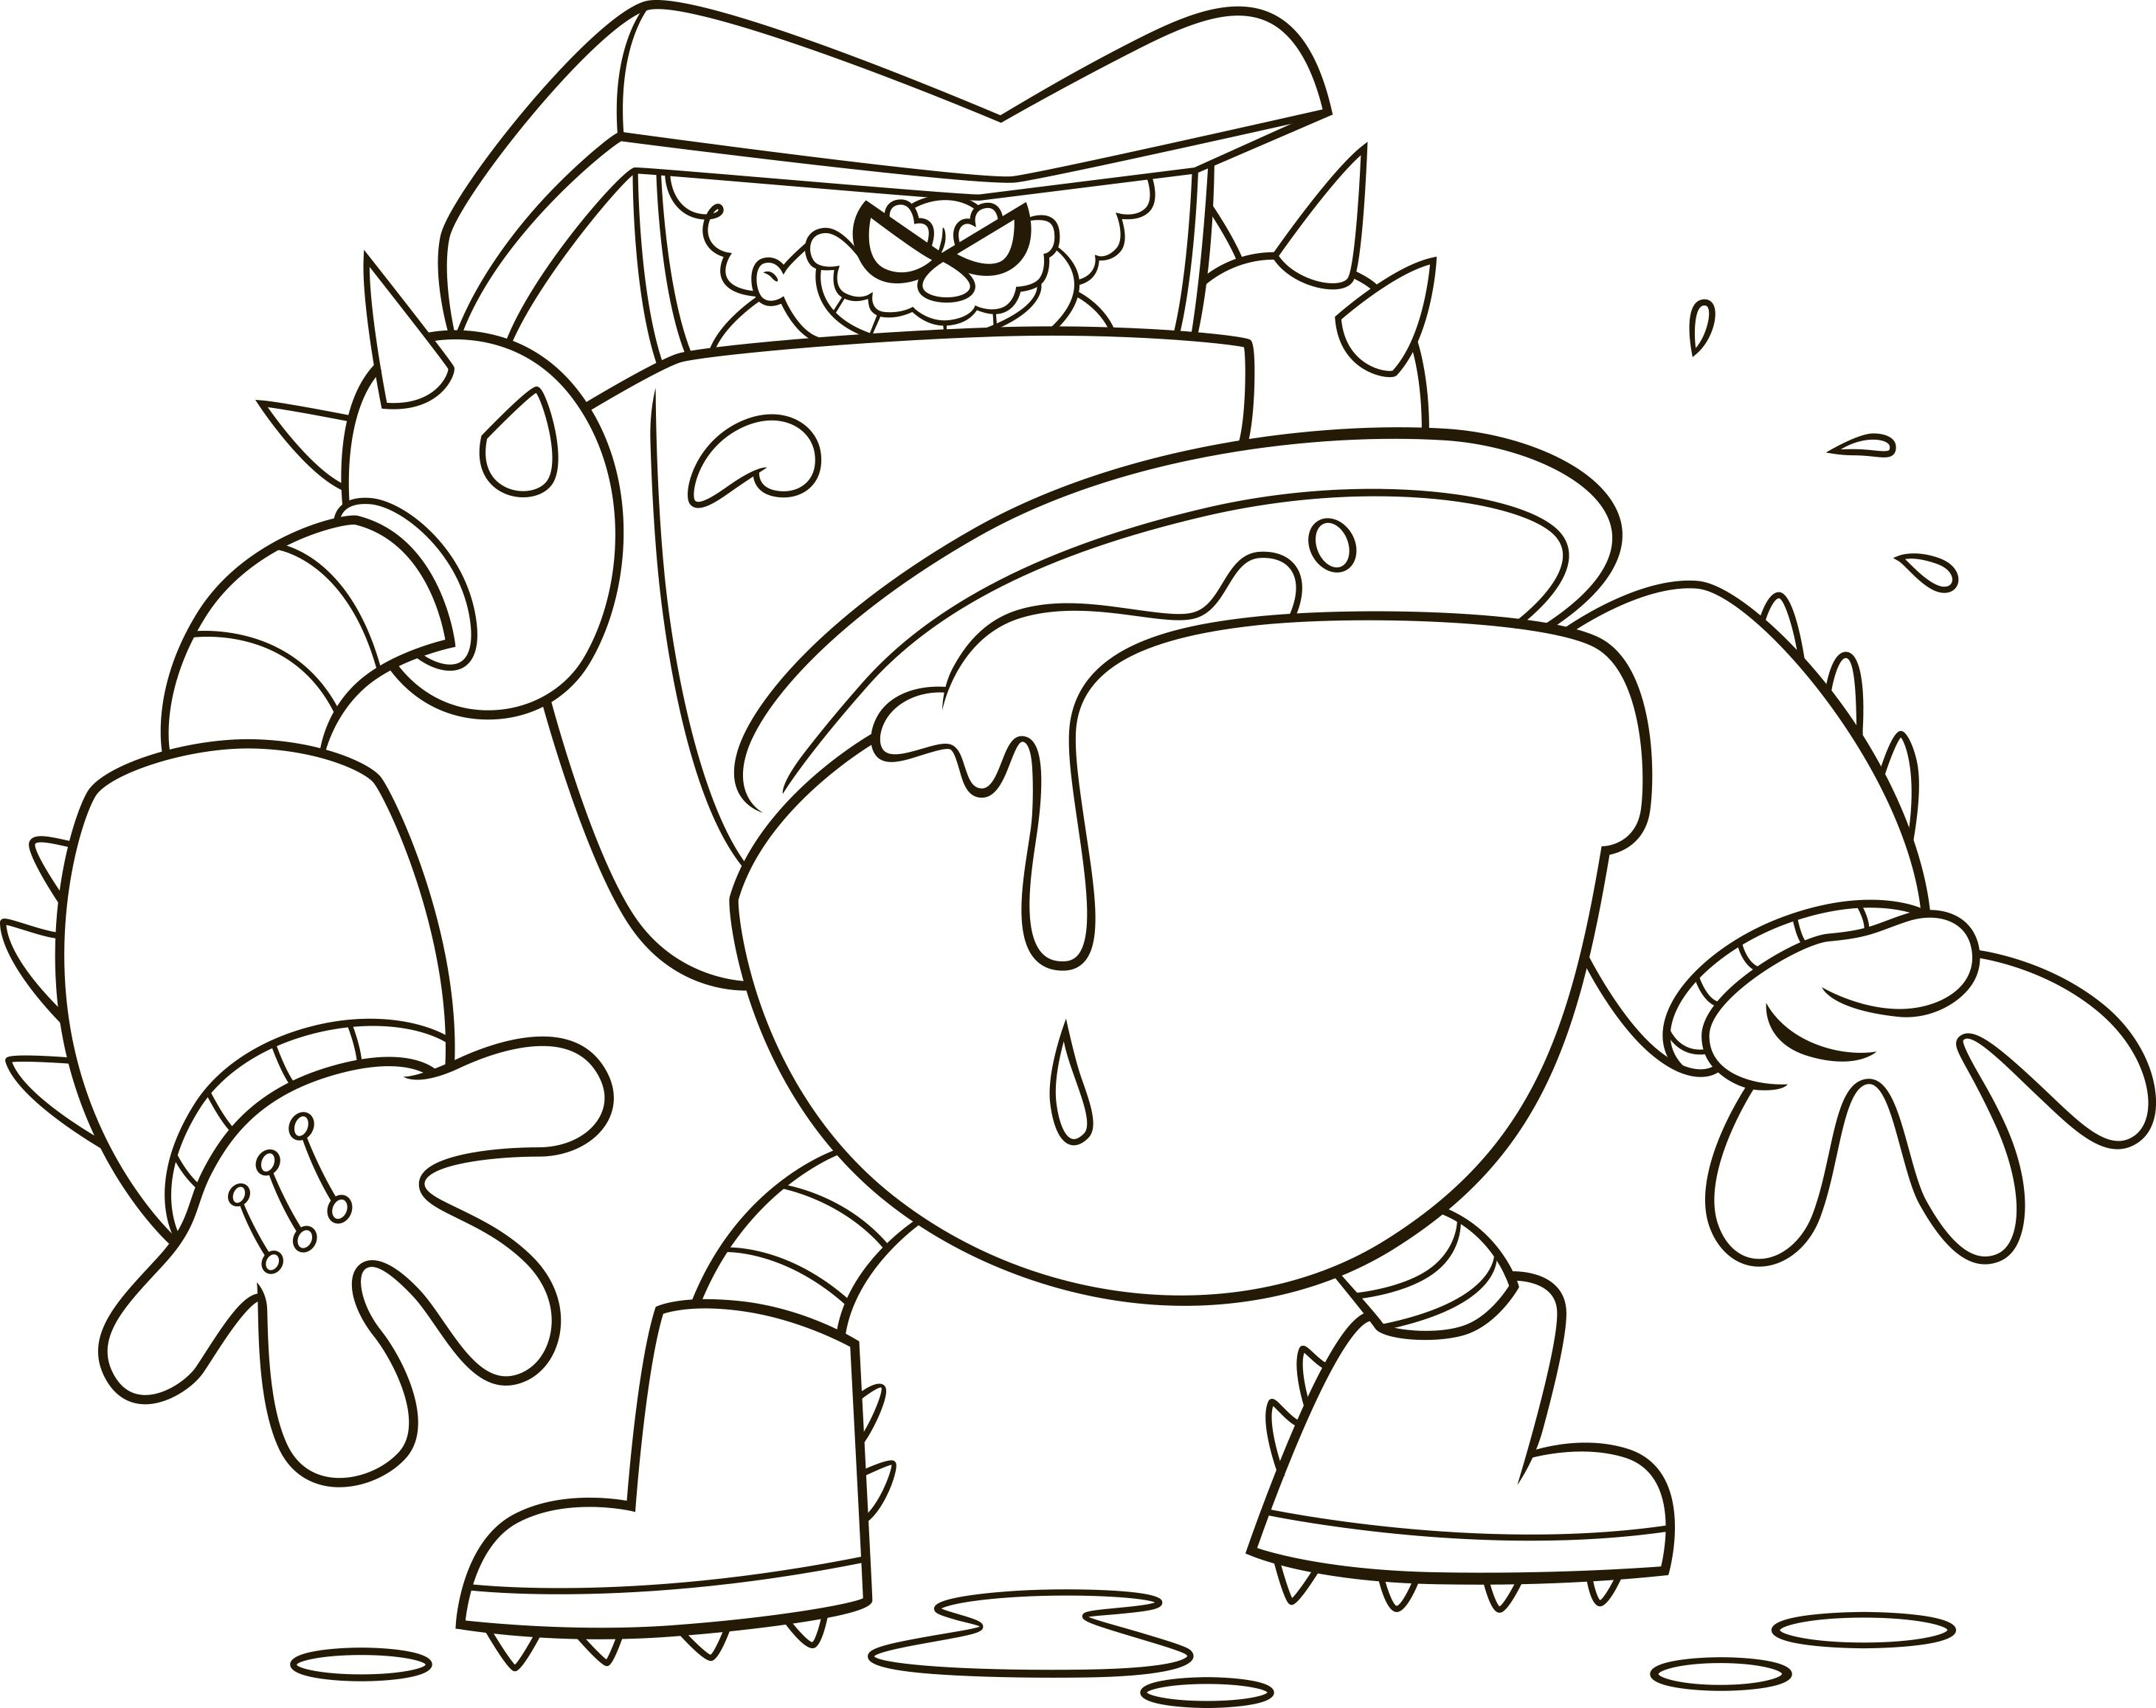 2922x2315 New Captain Underpants Coloring Pages Collection Printable